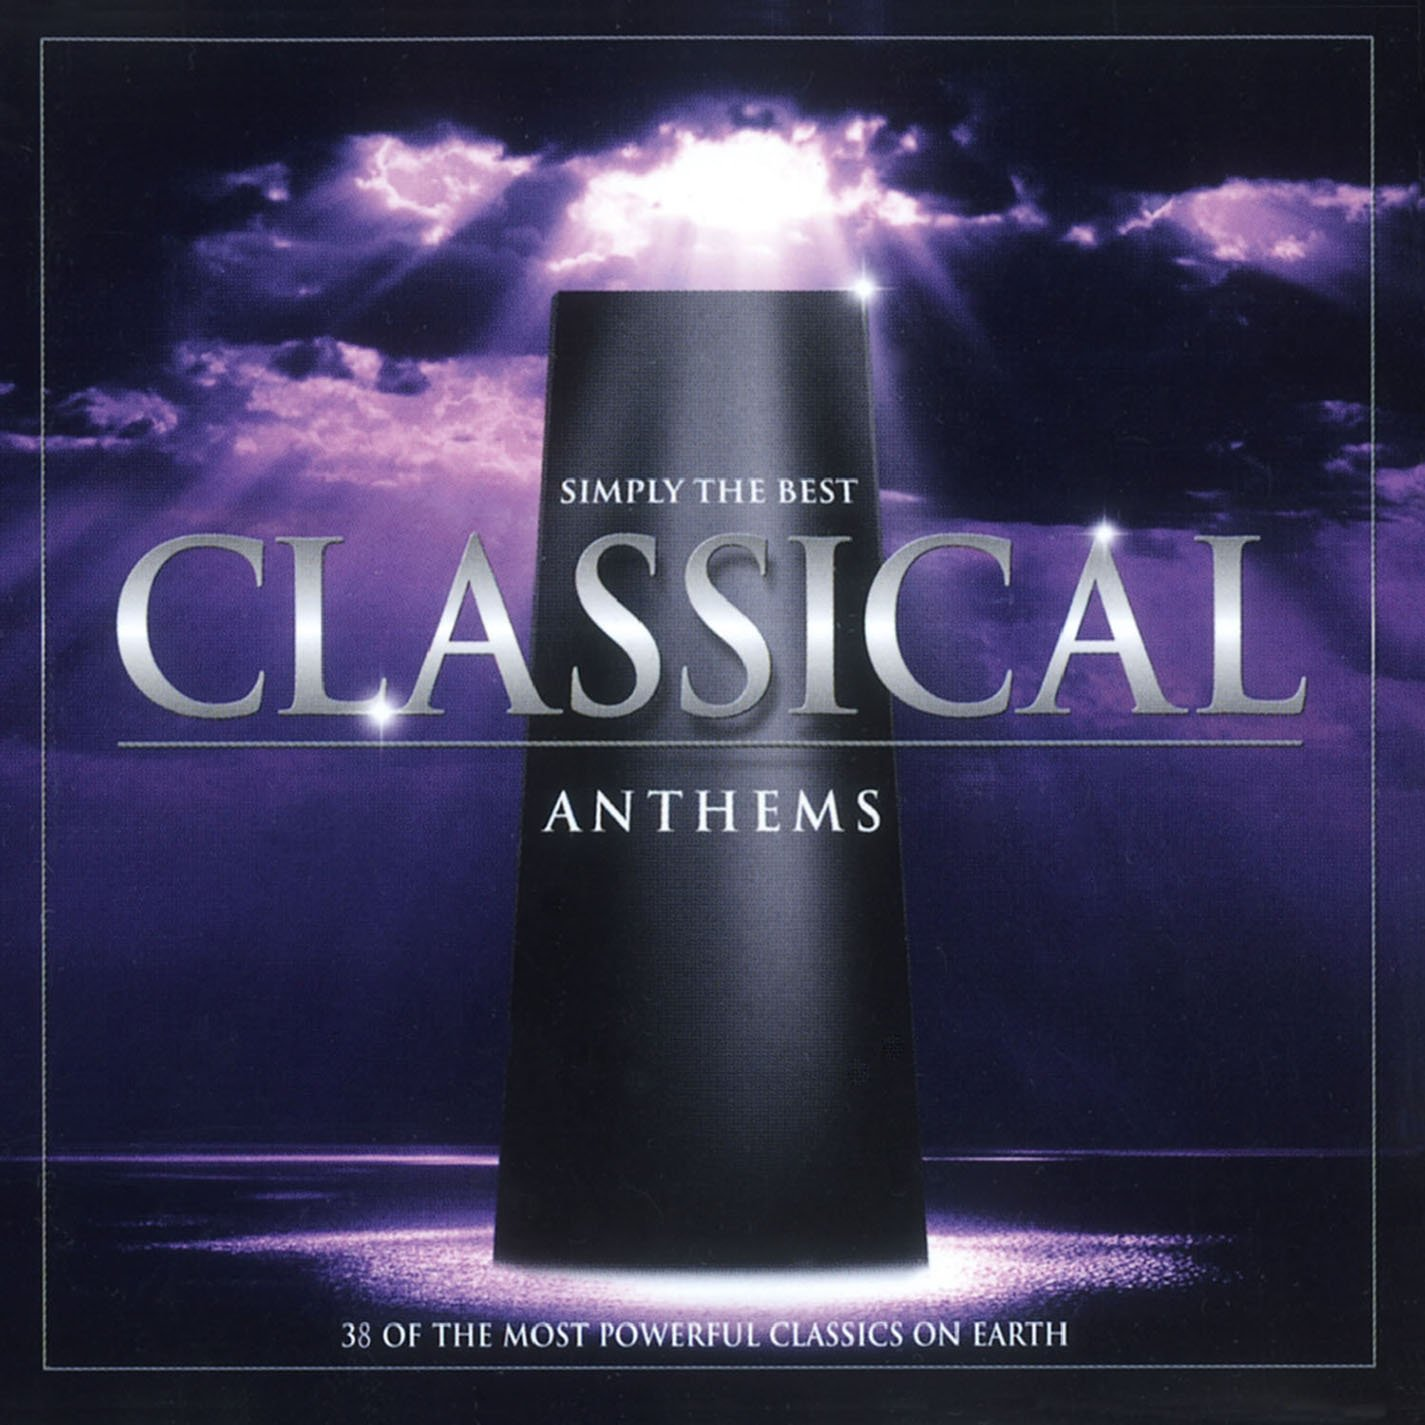 CD : SIMPLY THE BEST CLASSICAL ANTHEMS - Simply The Best Classical Anthems (CD)